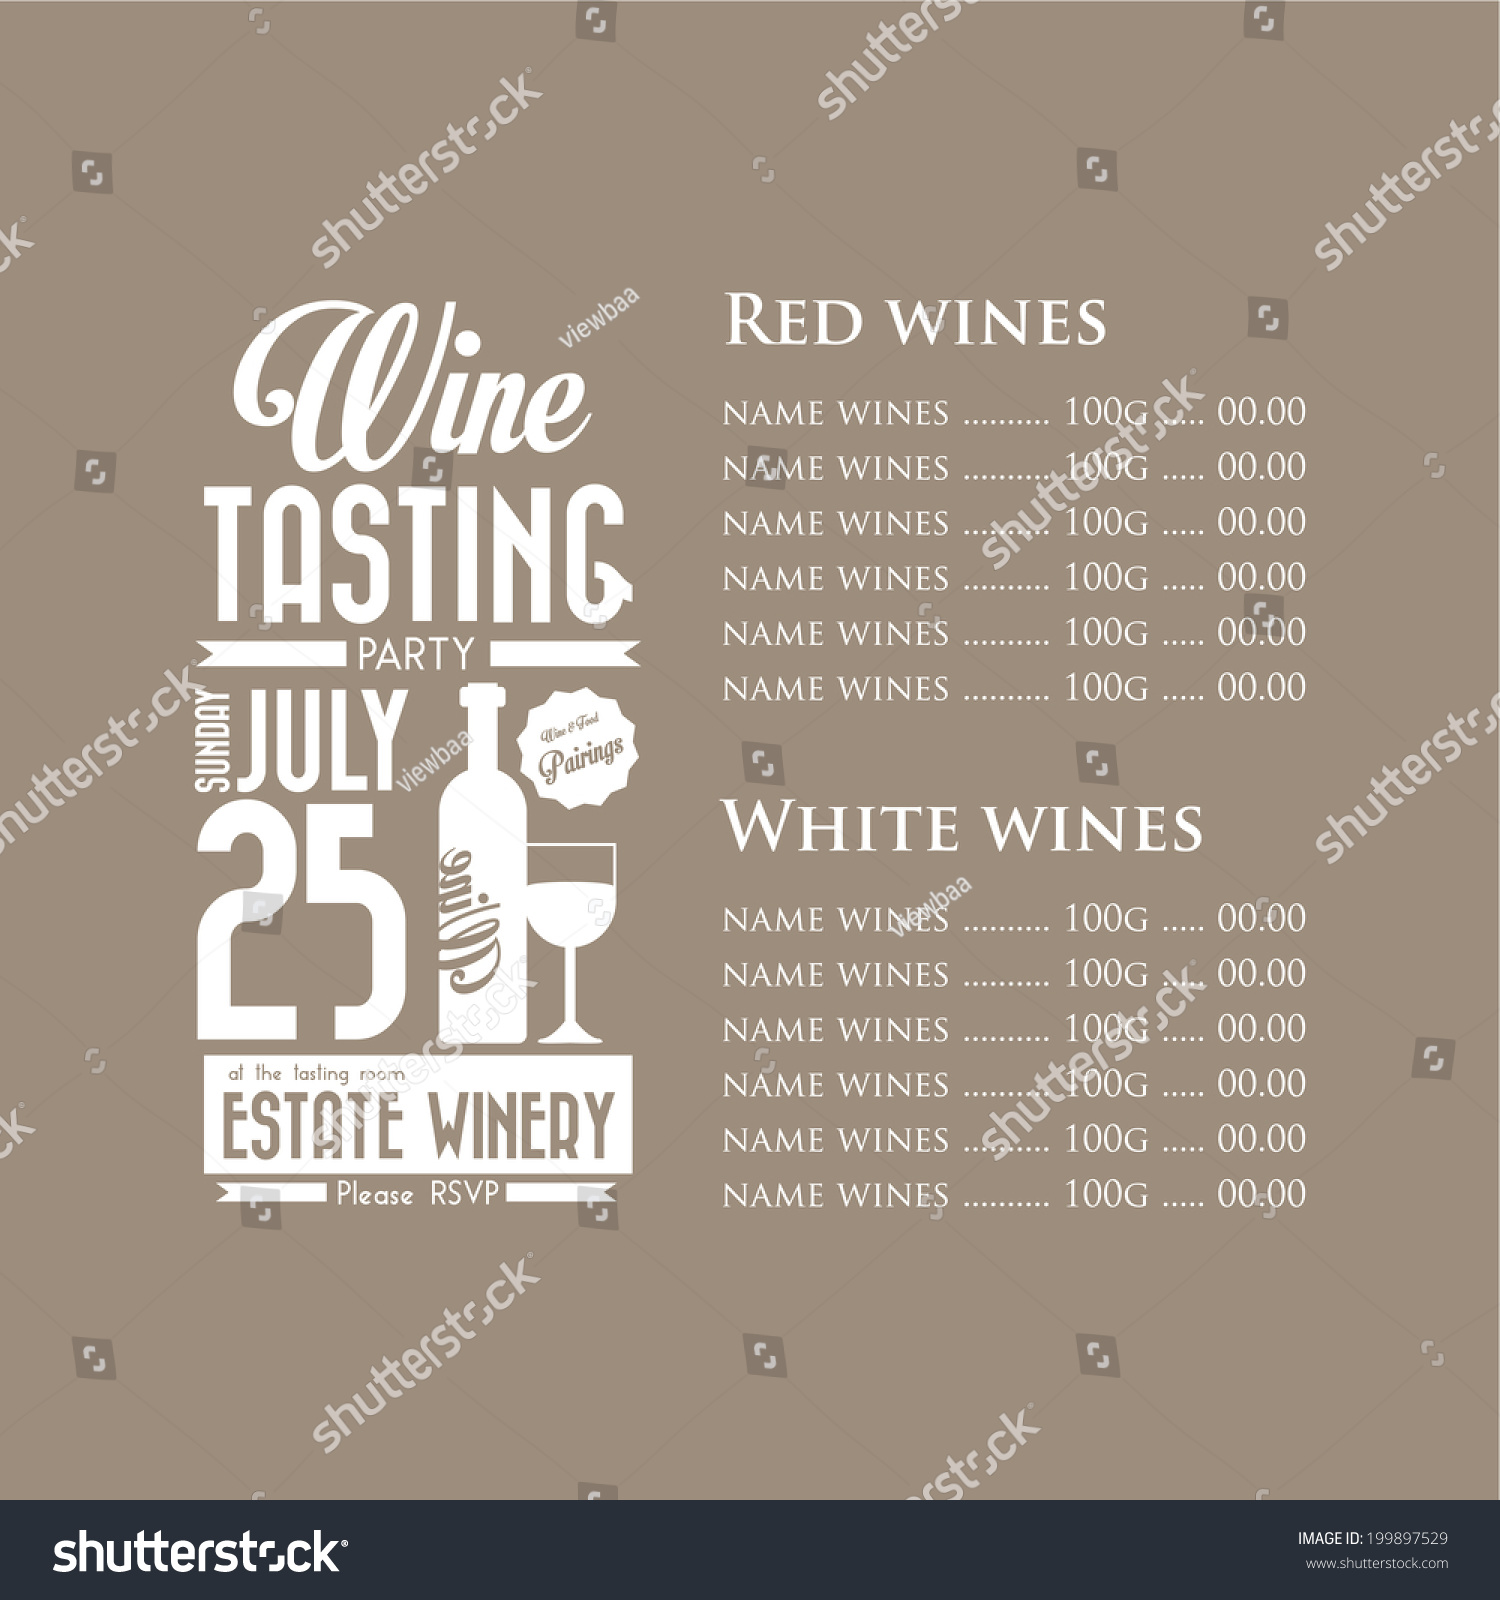 Royalty free vintage wine tasting party invitation 199897529 vintage wine tasting party invitation menu design brown template illustration 199897529 pronofoot35fo Images